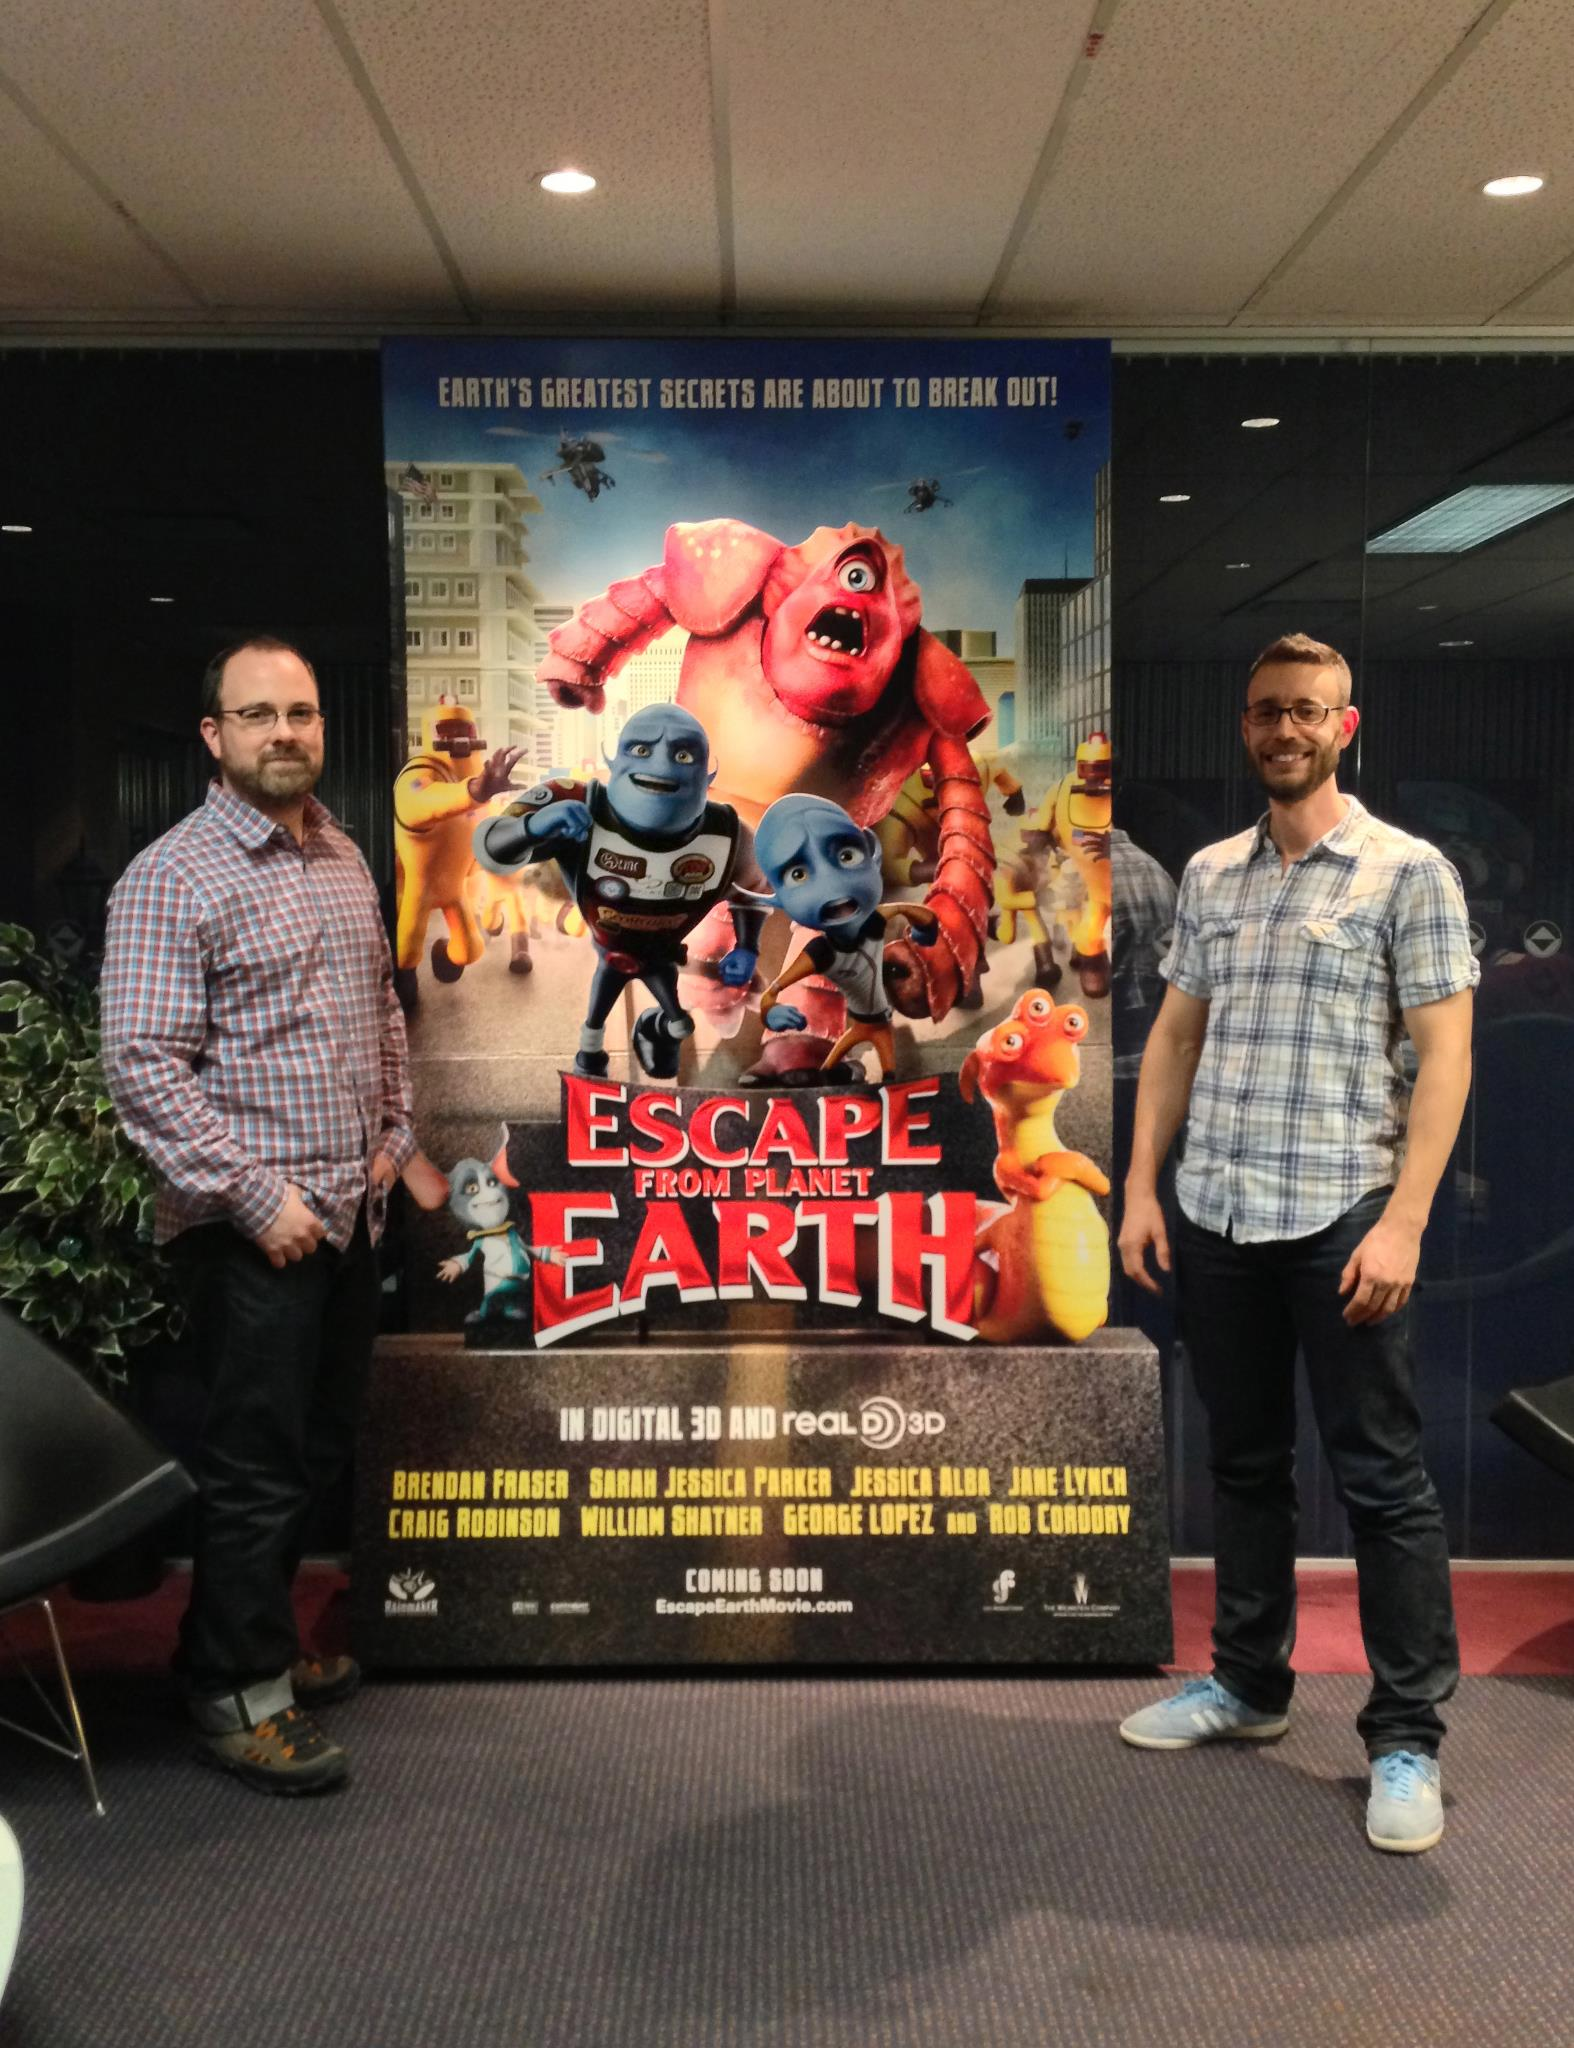 The Escape From Planet Earth standee, in the Rainmaker Lobby!